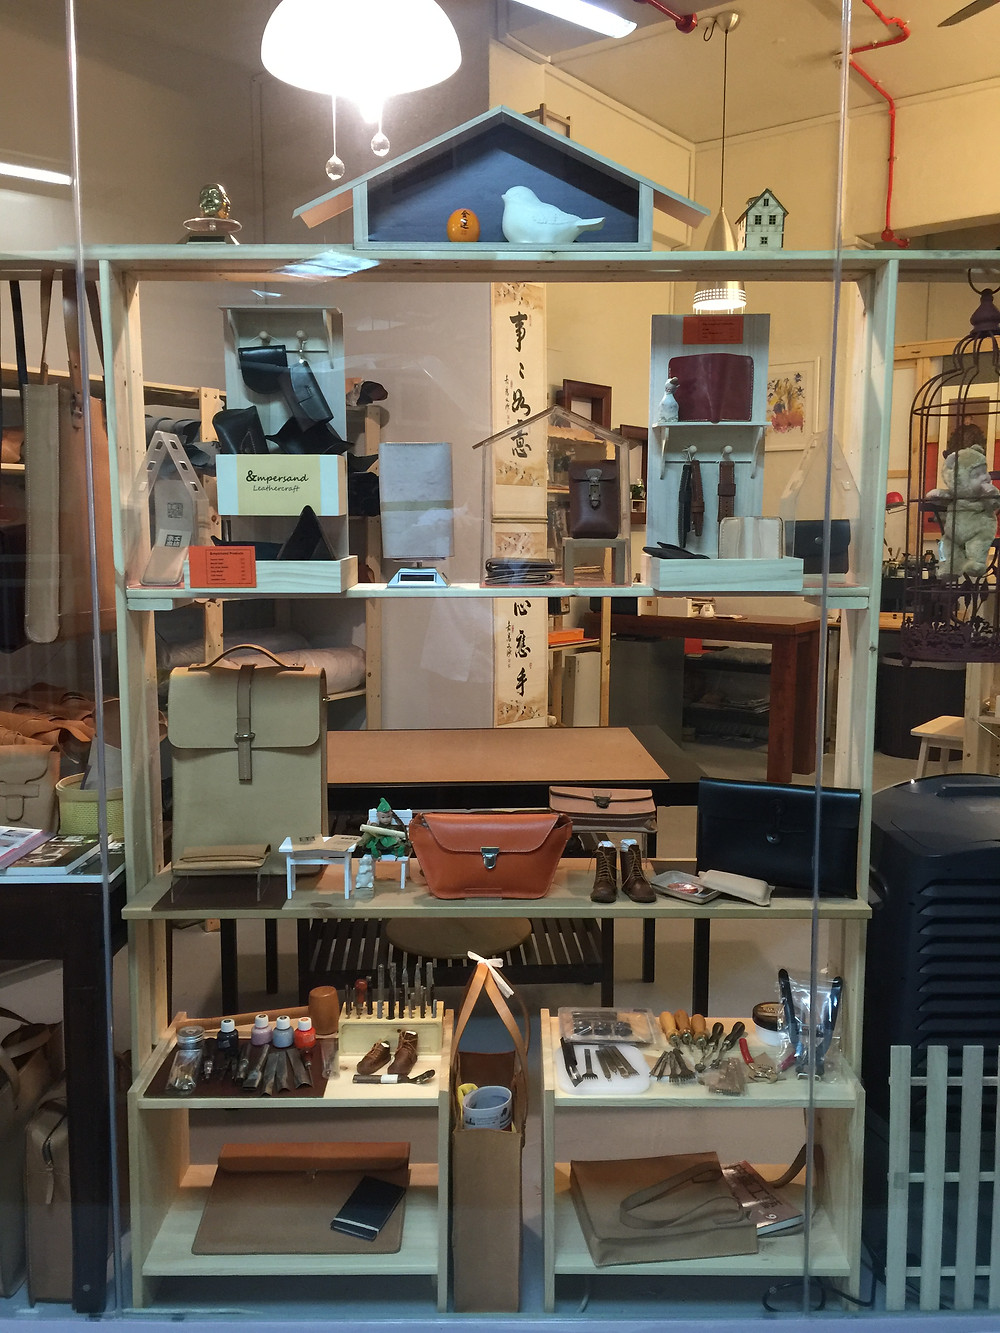 New display for local crafters' product to exhibit and sale